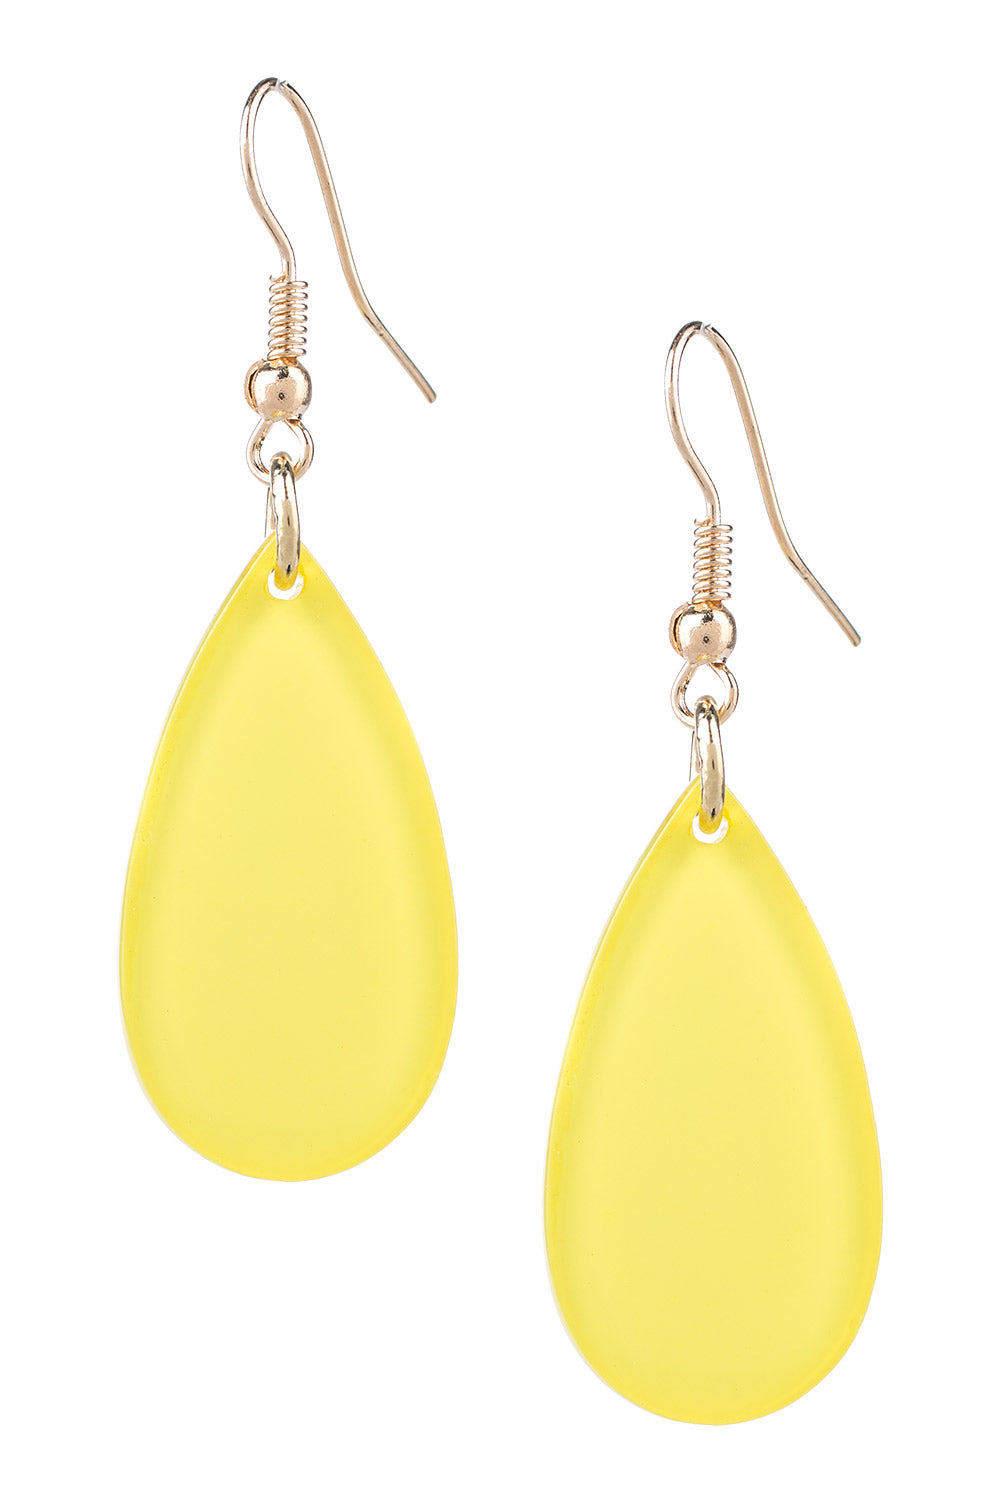 Type 1 Summer Sunshine Earrings